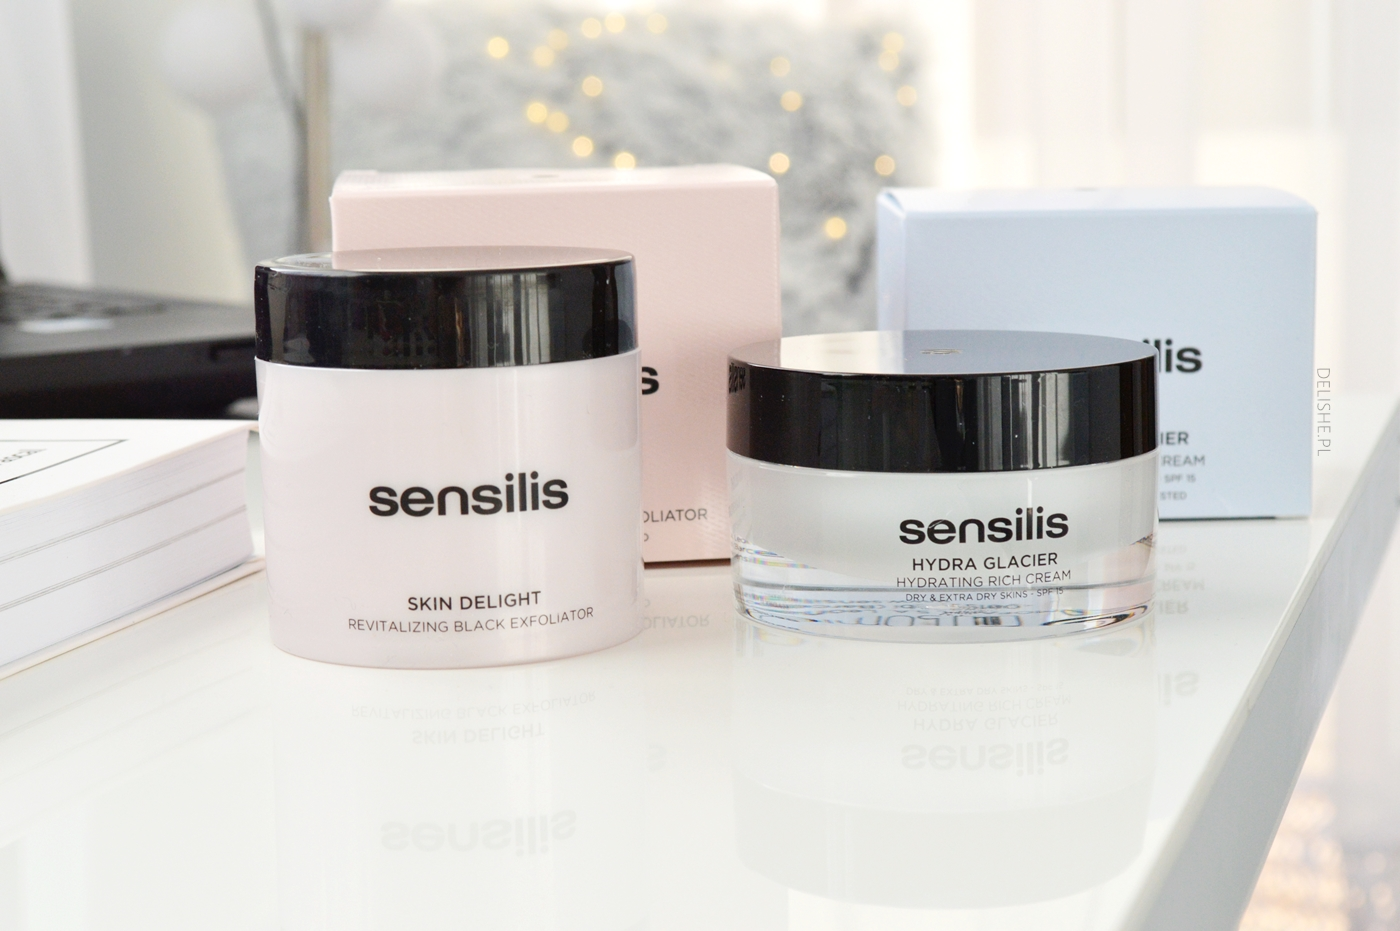 sensilis black exfoliator and cream